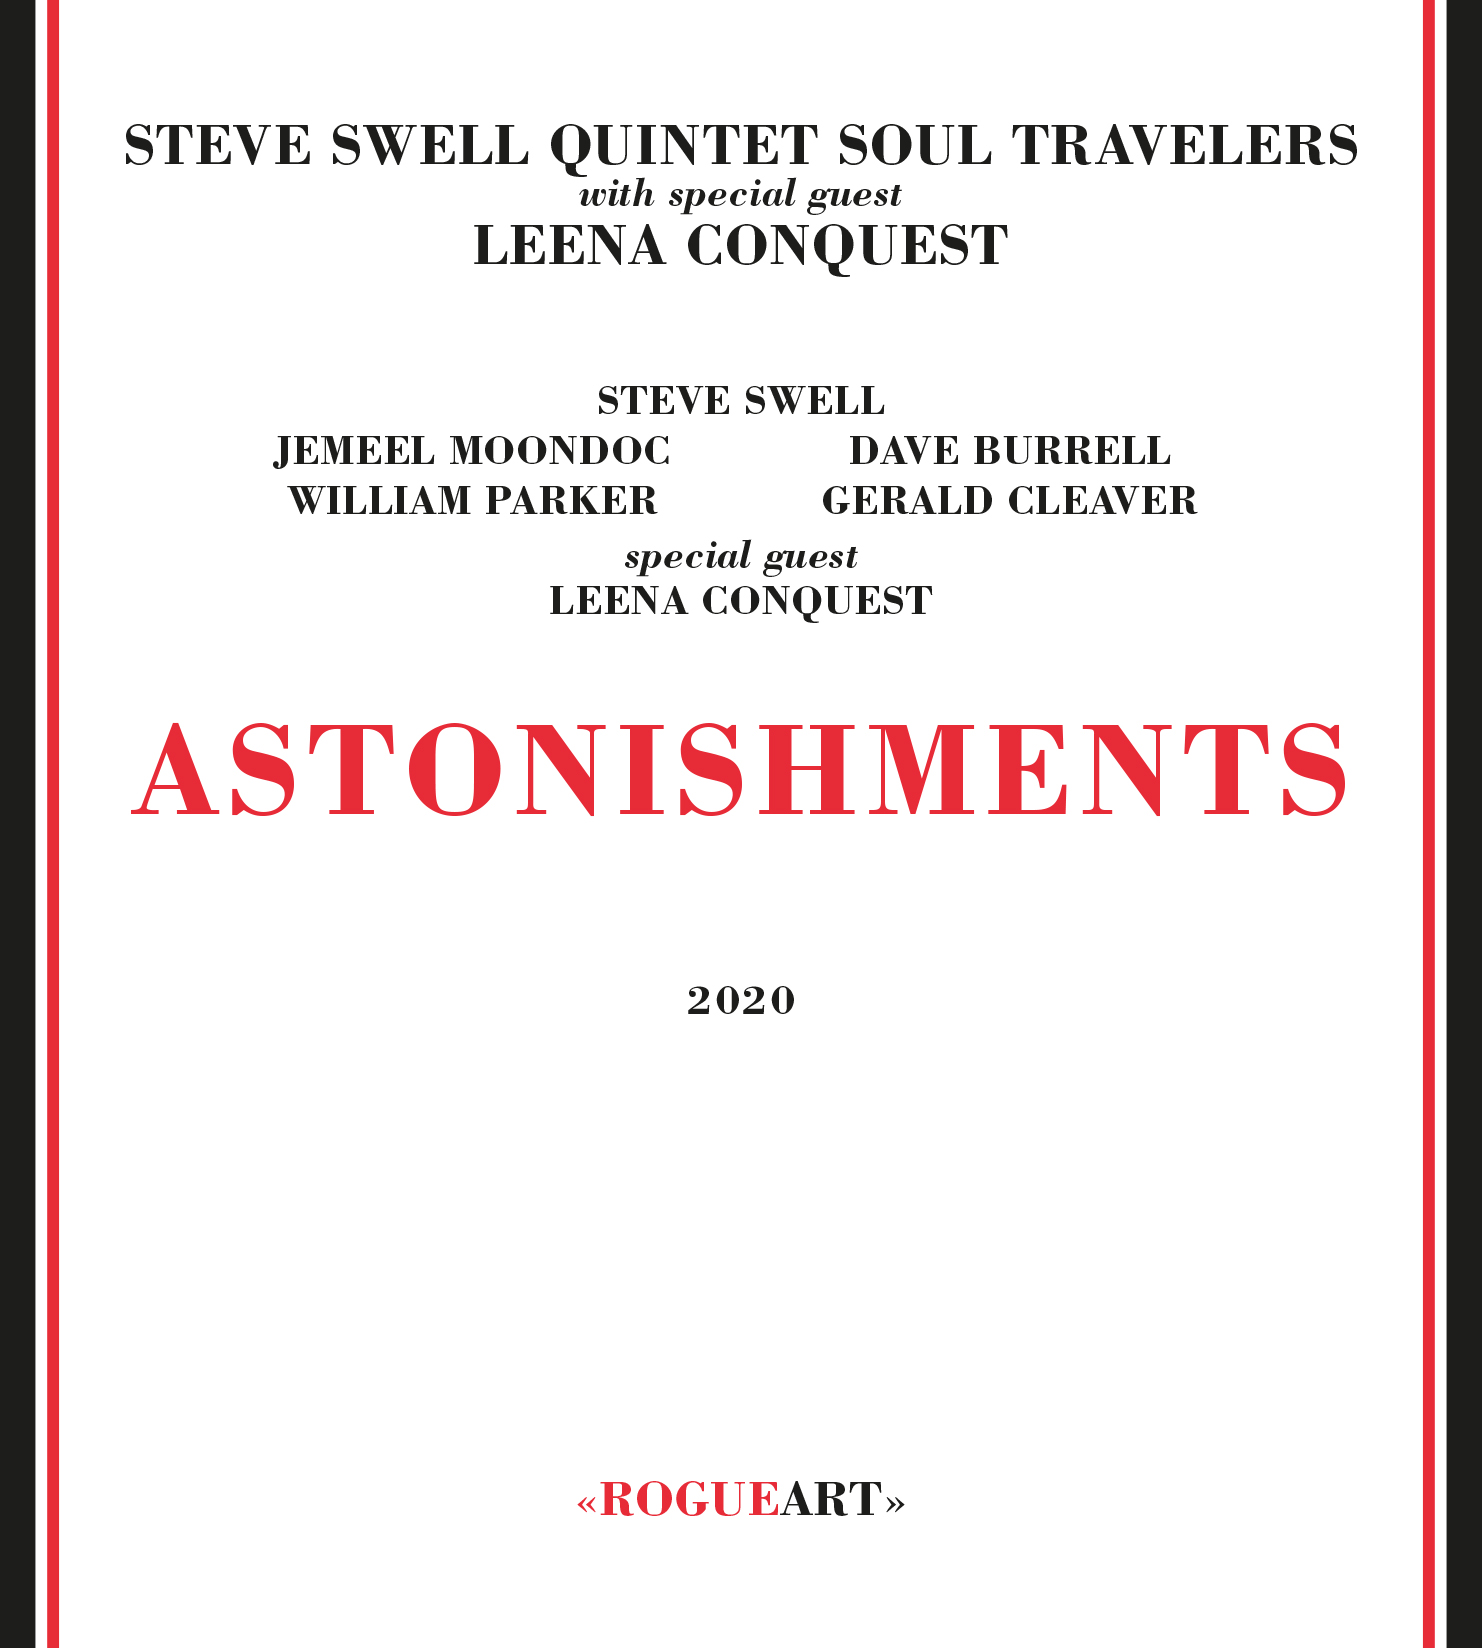 Front cover of the album ASTONISHMENTS